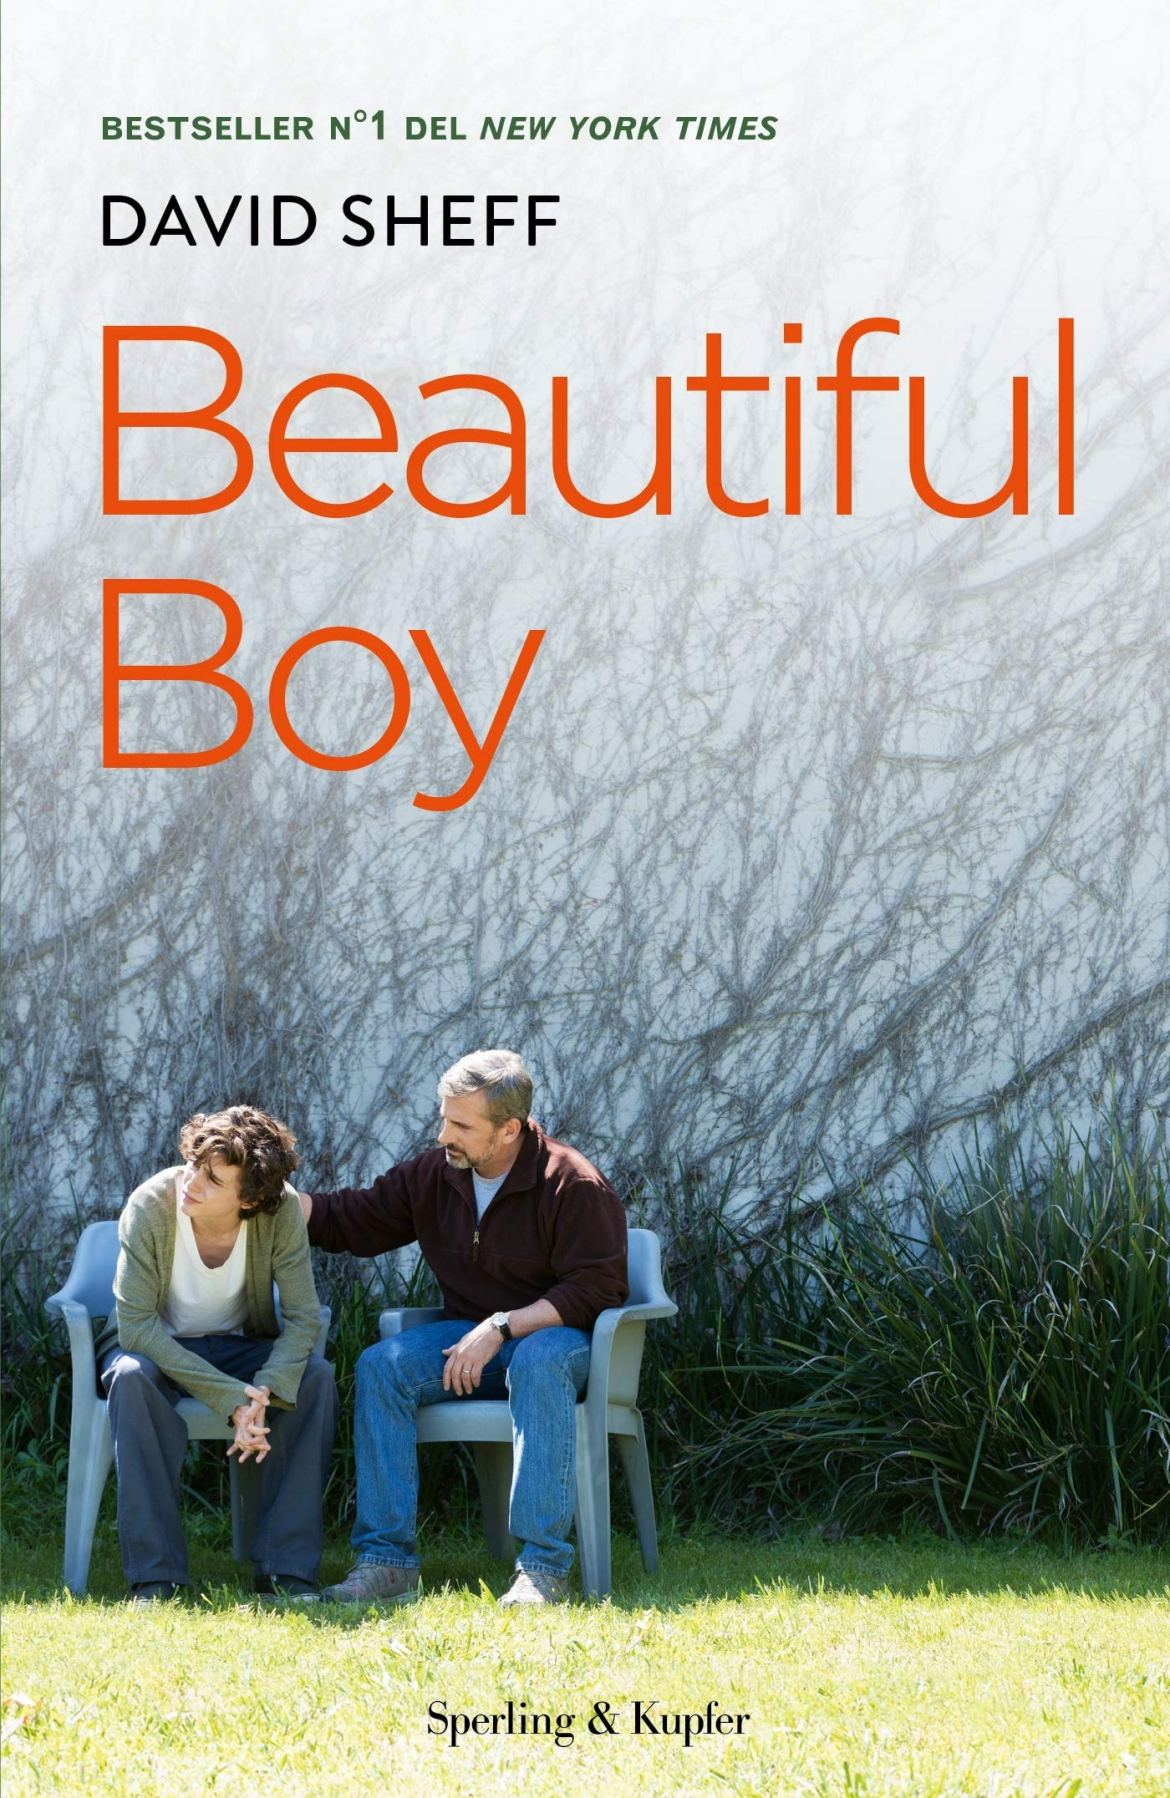 Recensione di Beautiful Boy – David Sheff